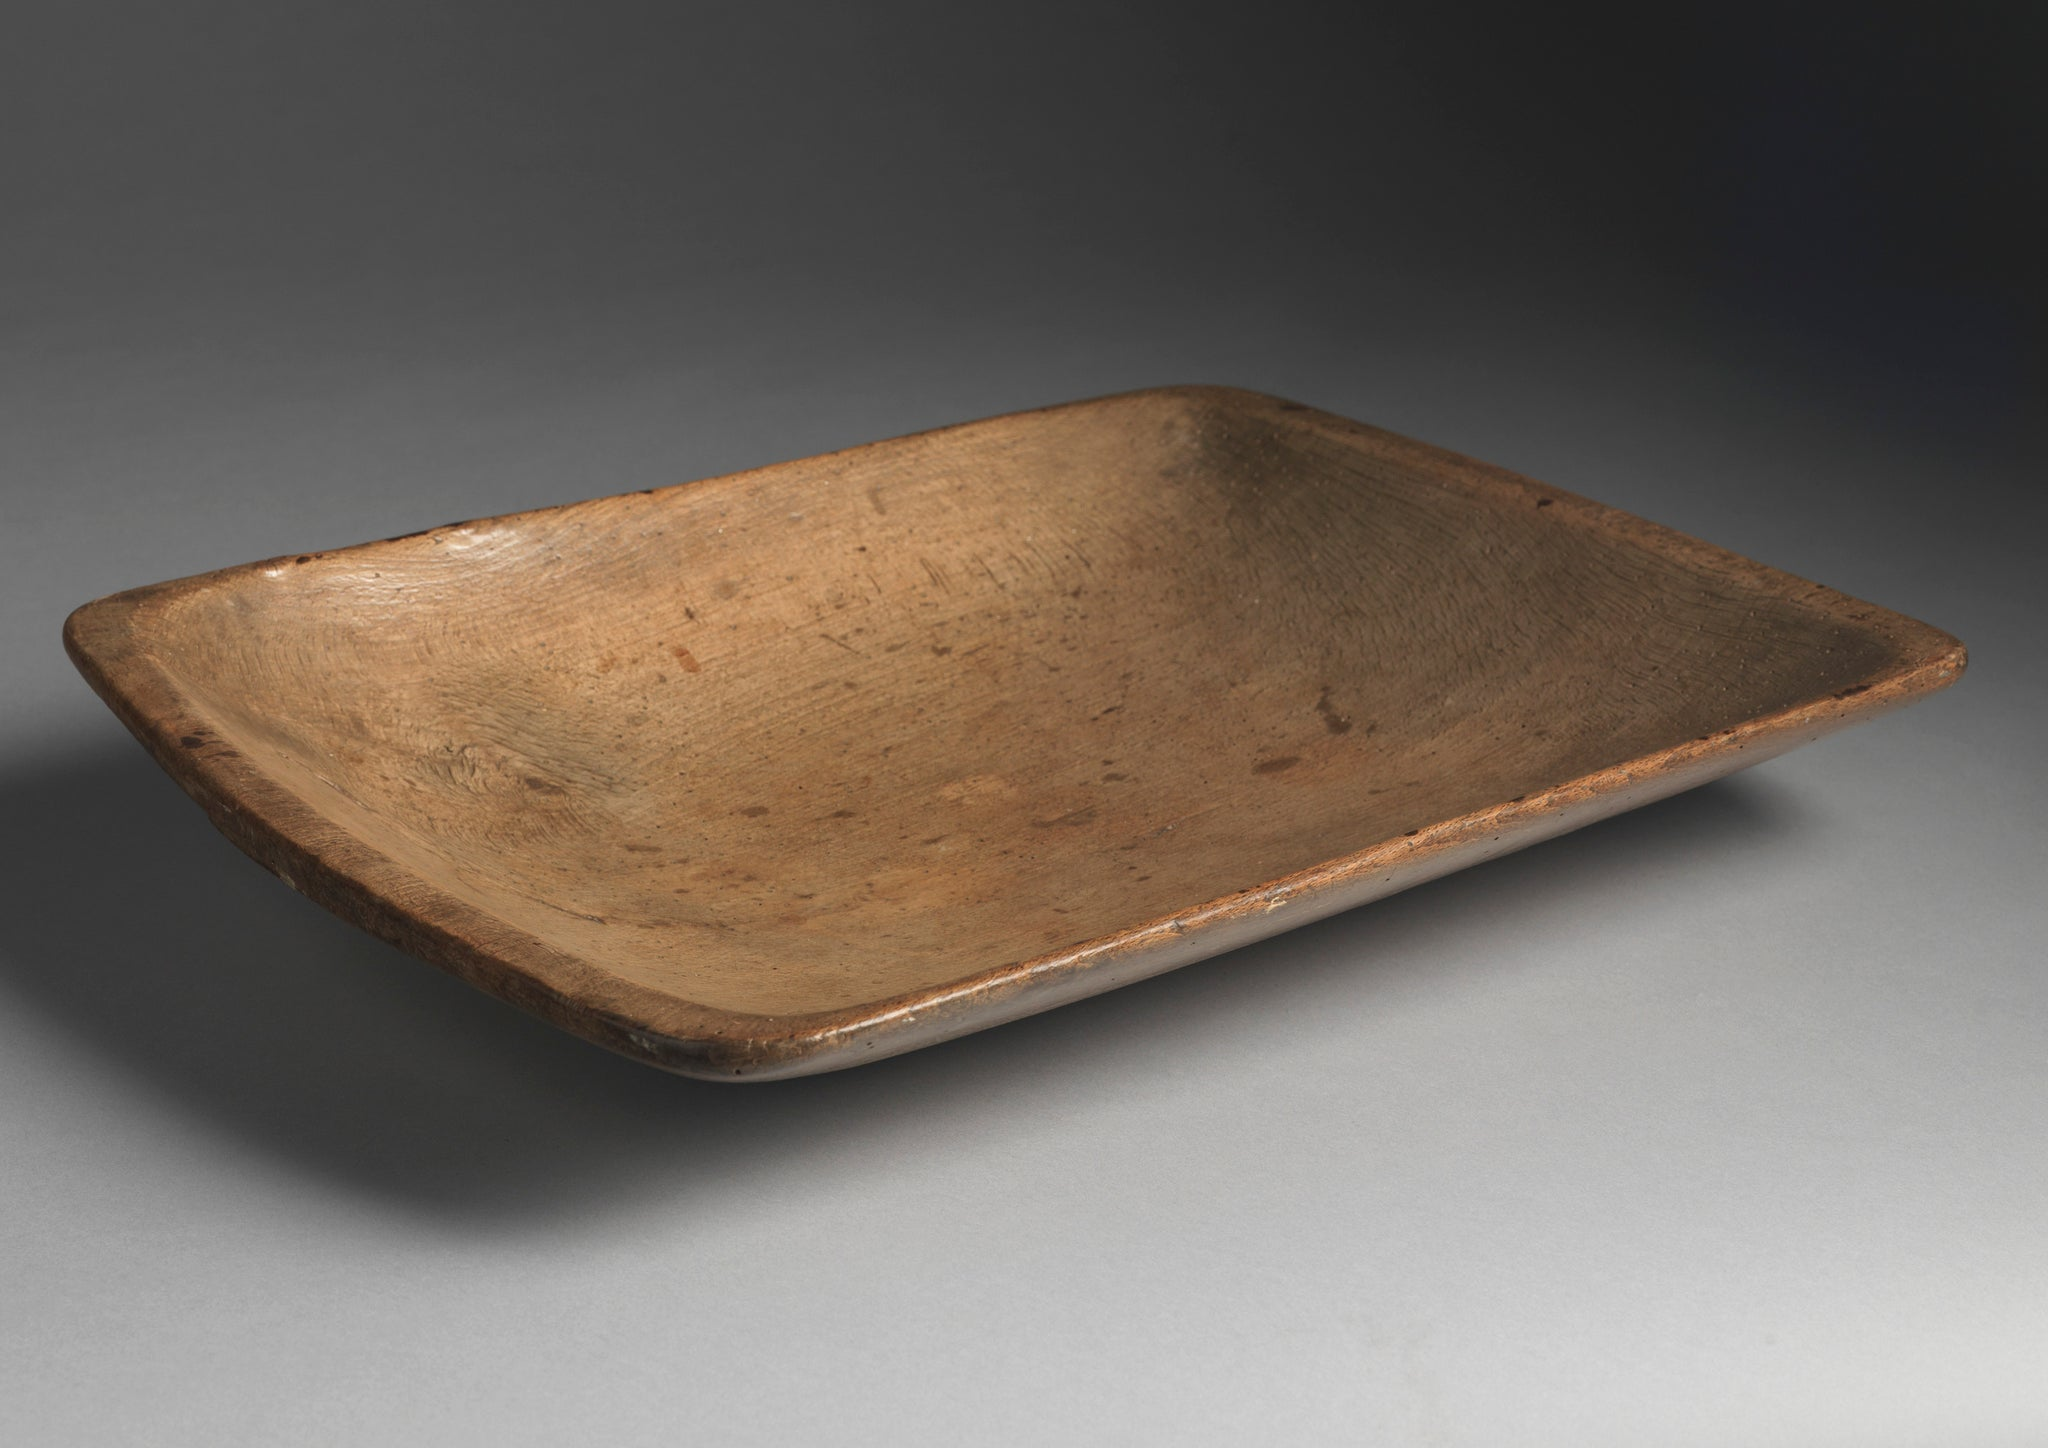 Early Rectangular Serving or 'Common' Dish